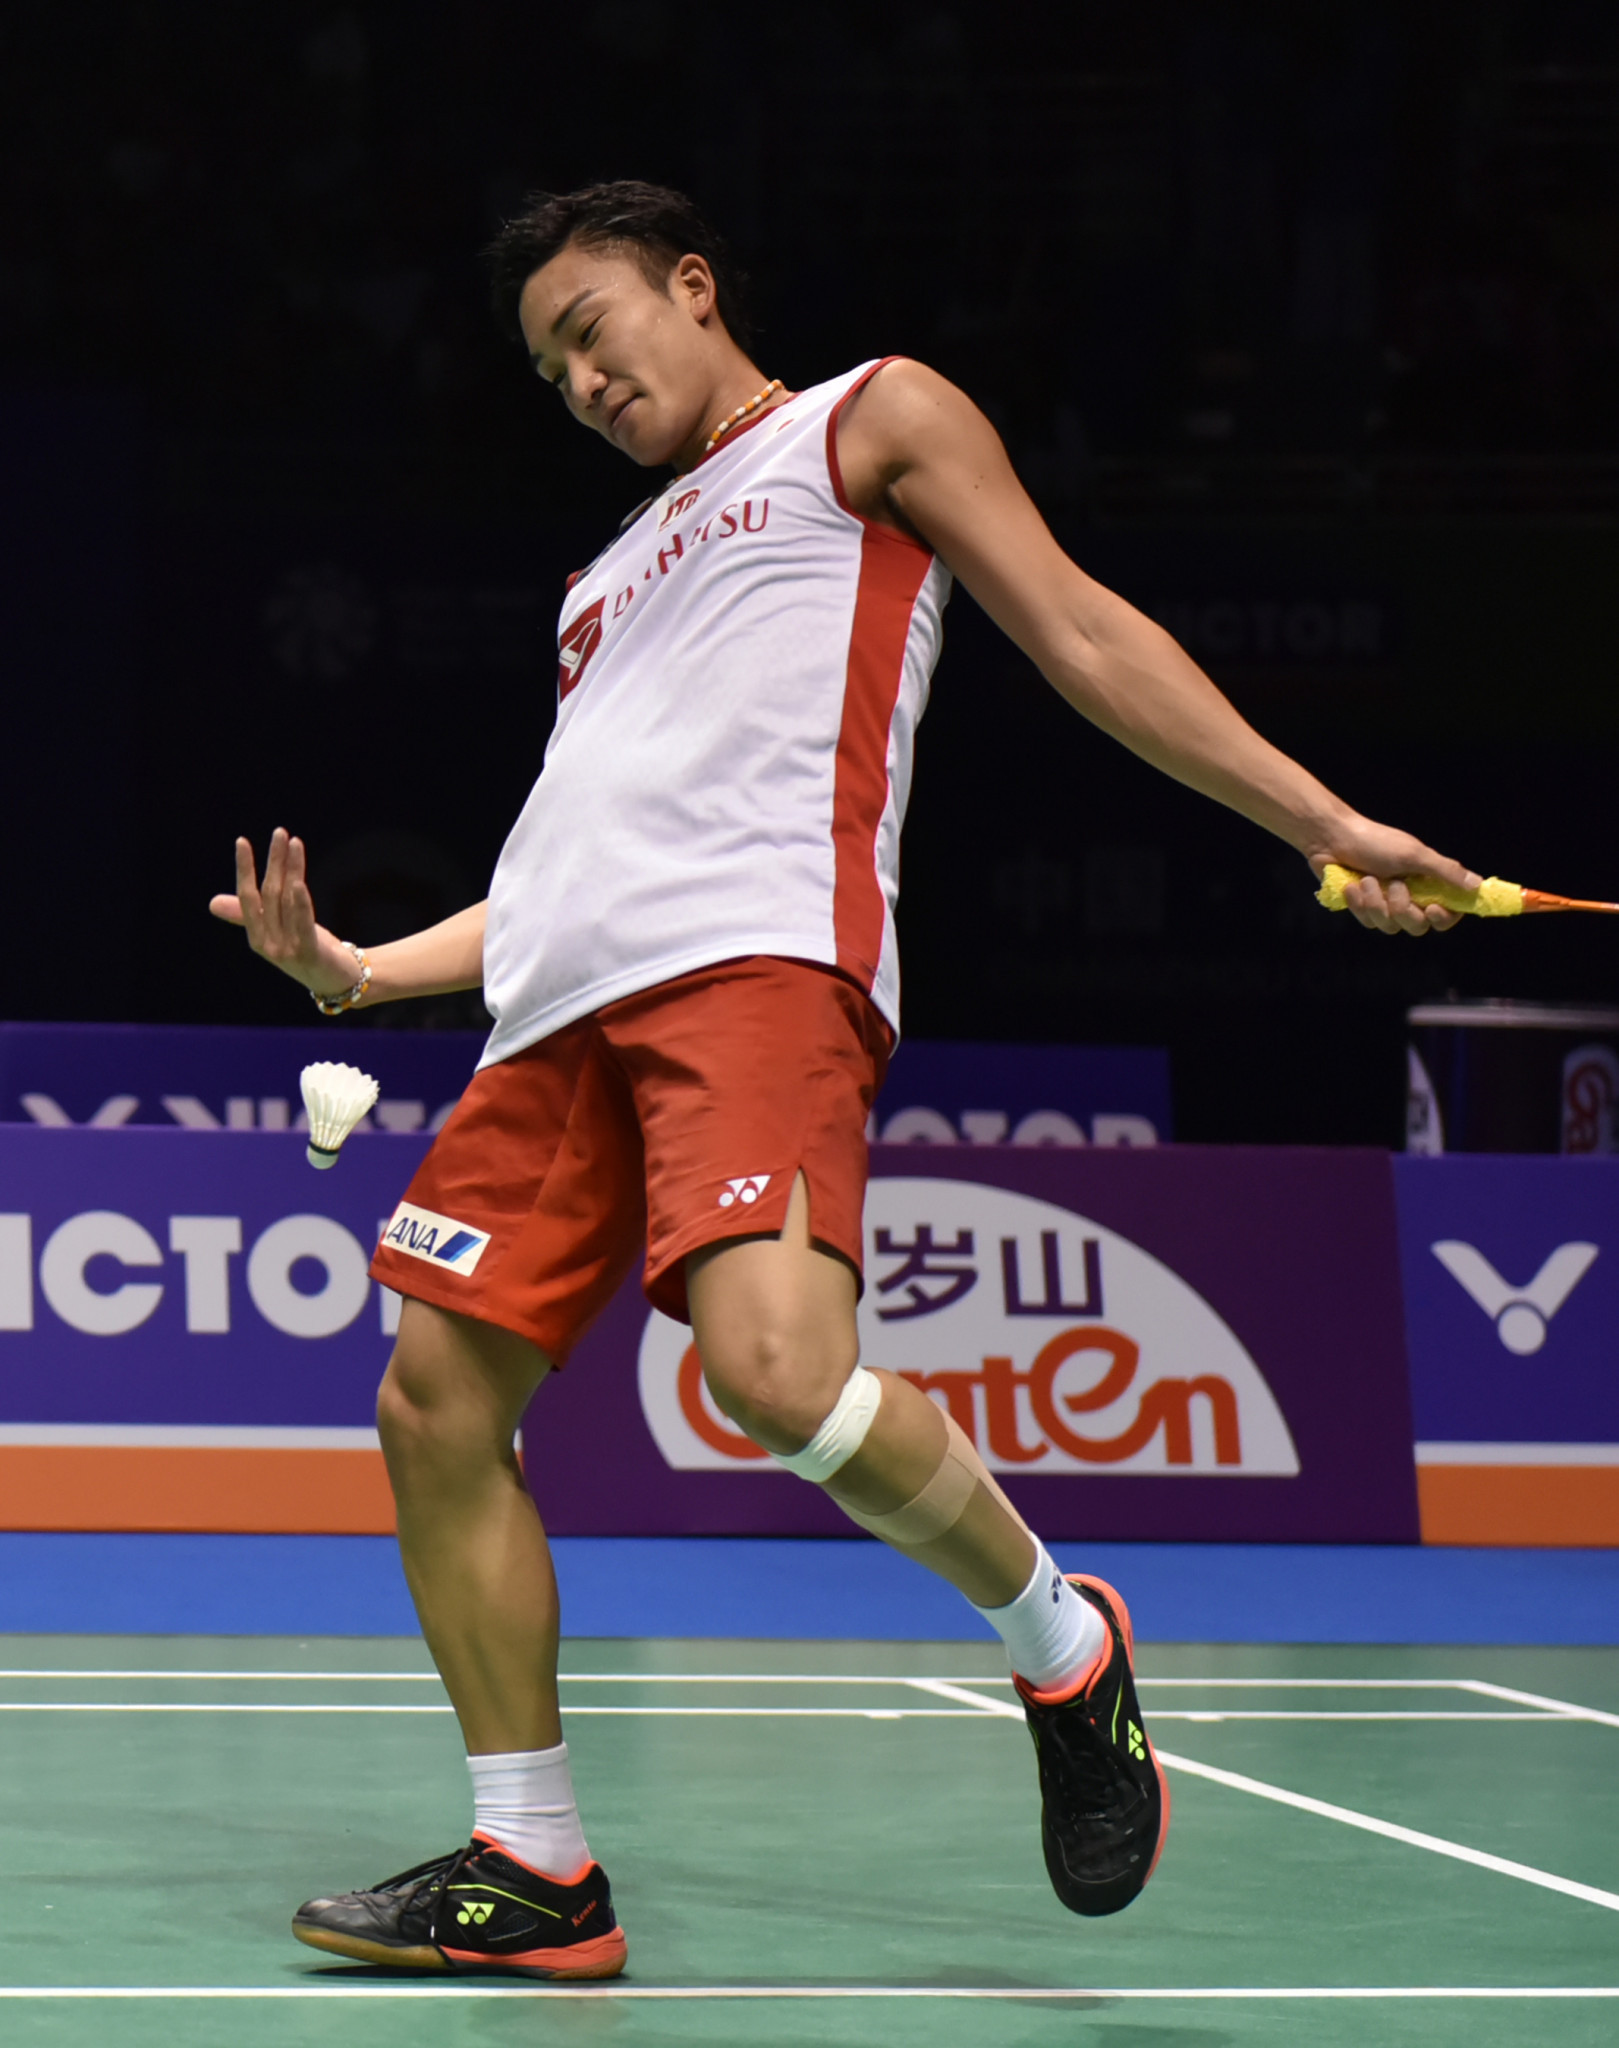 Kento Momota will be out for revenge following his shock defeat to the Indonesian player in the final of the China Open ©Getty Images